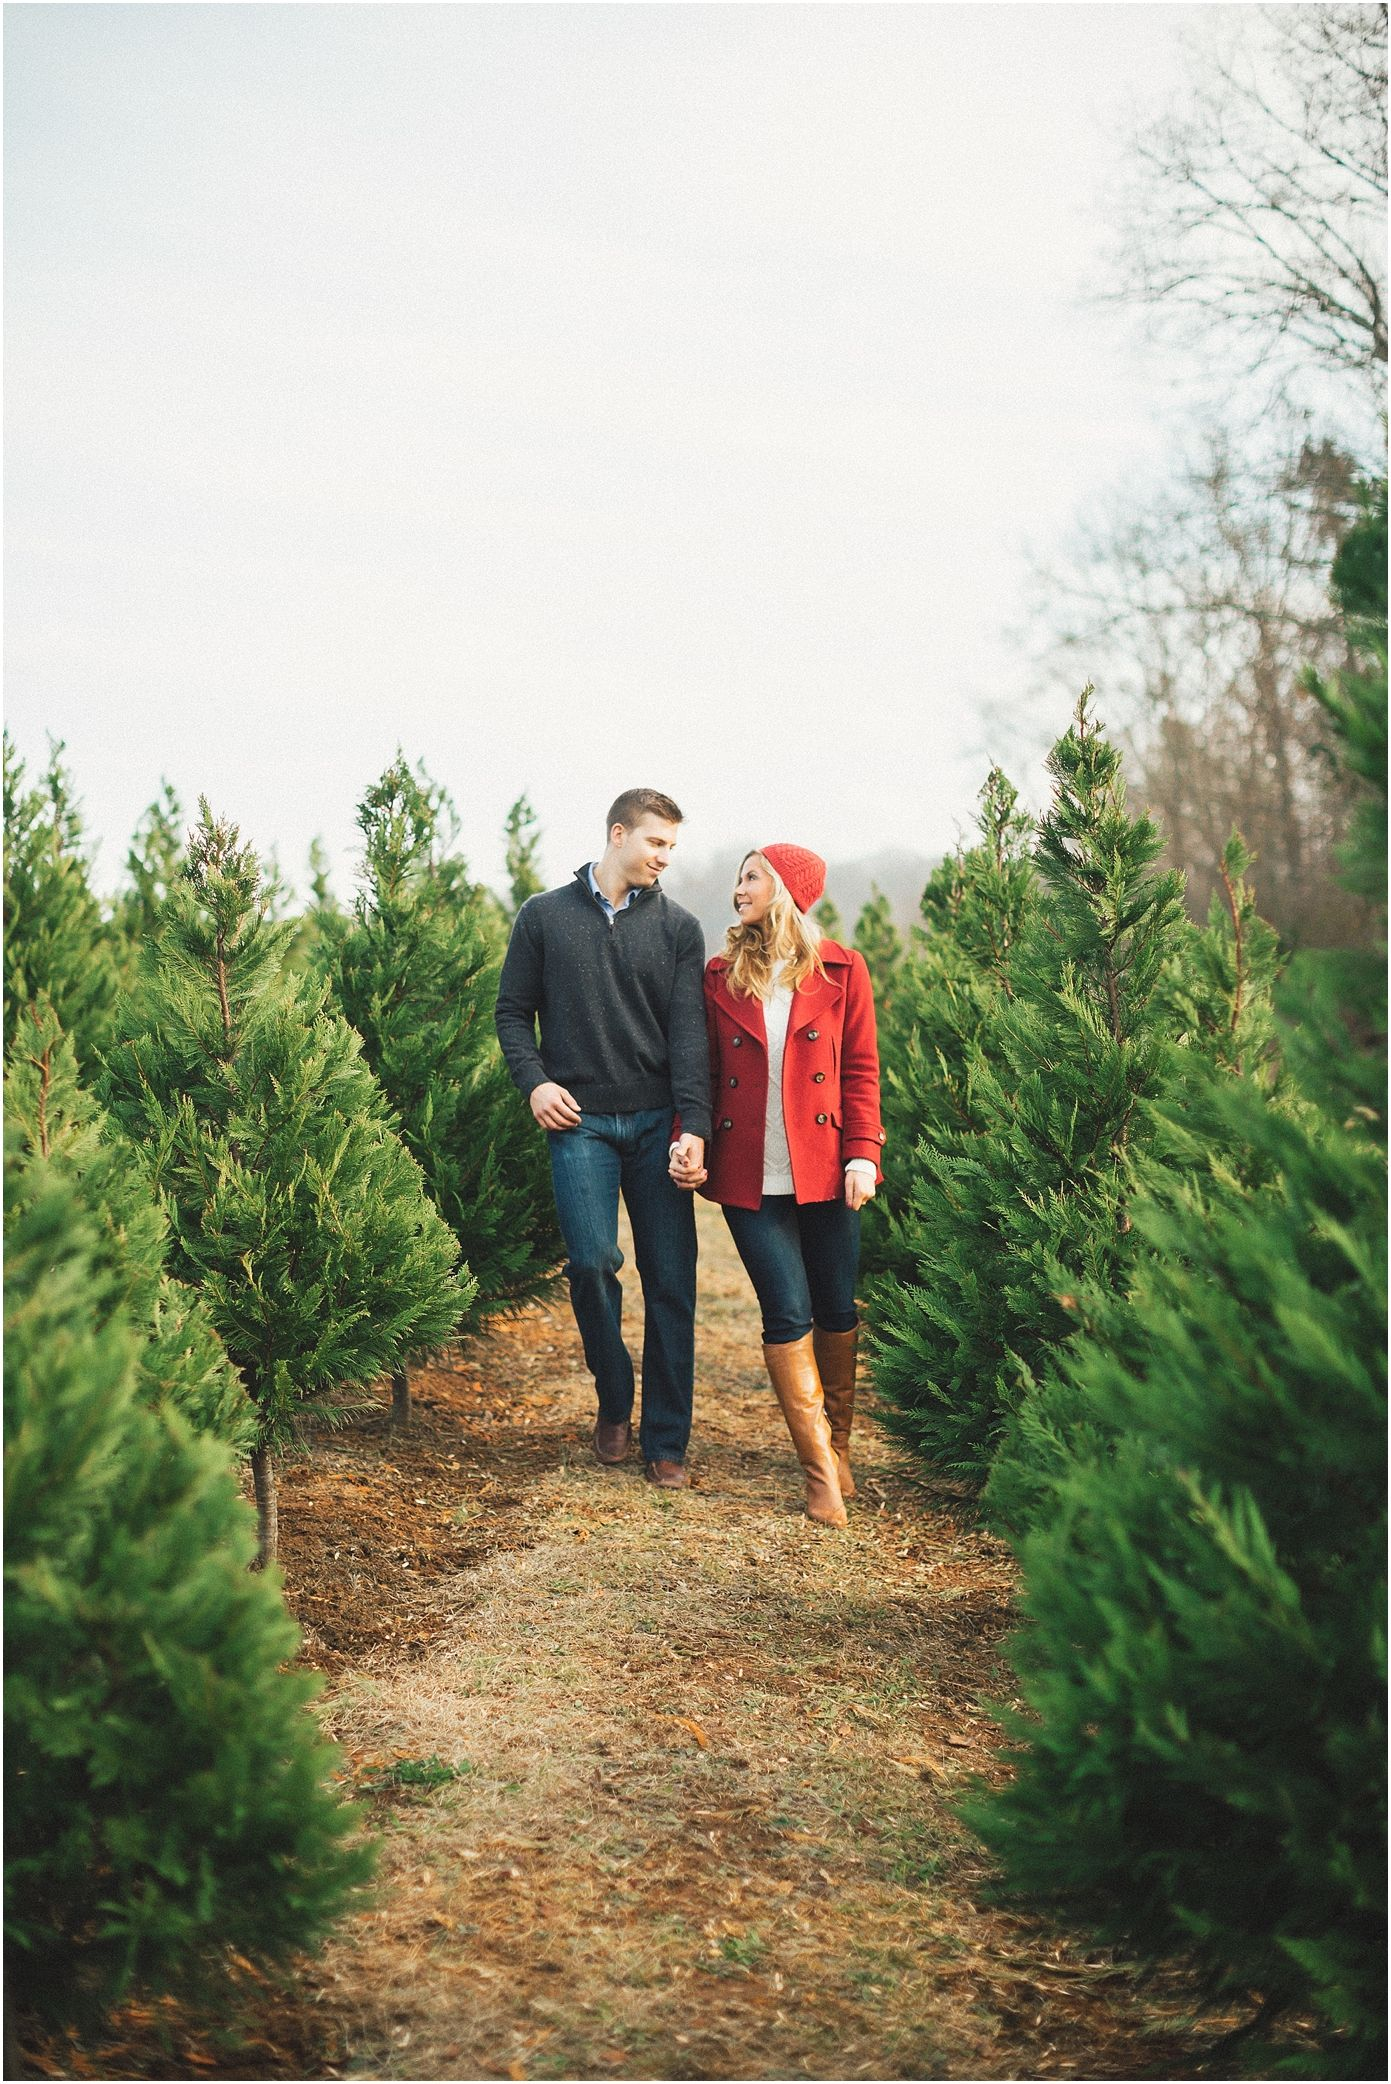 Christmas Tree Farm Engagement Ideas Winter Wedding Decor Christmas Couple Pictures Christmas Pictures Outfits Christmas Tree Farm Photos